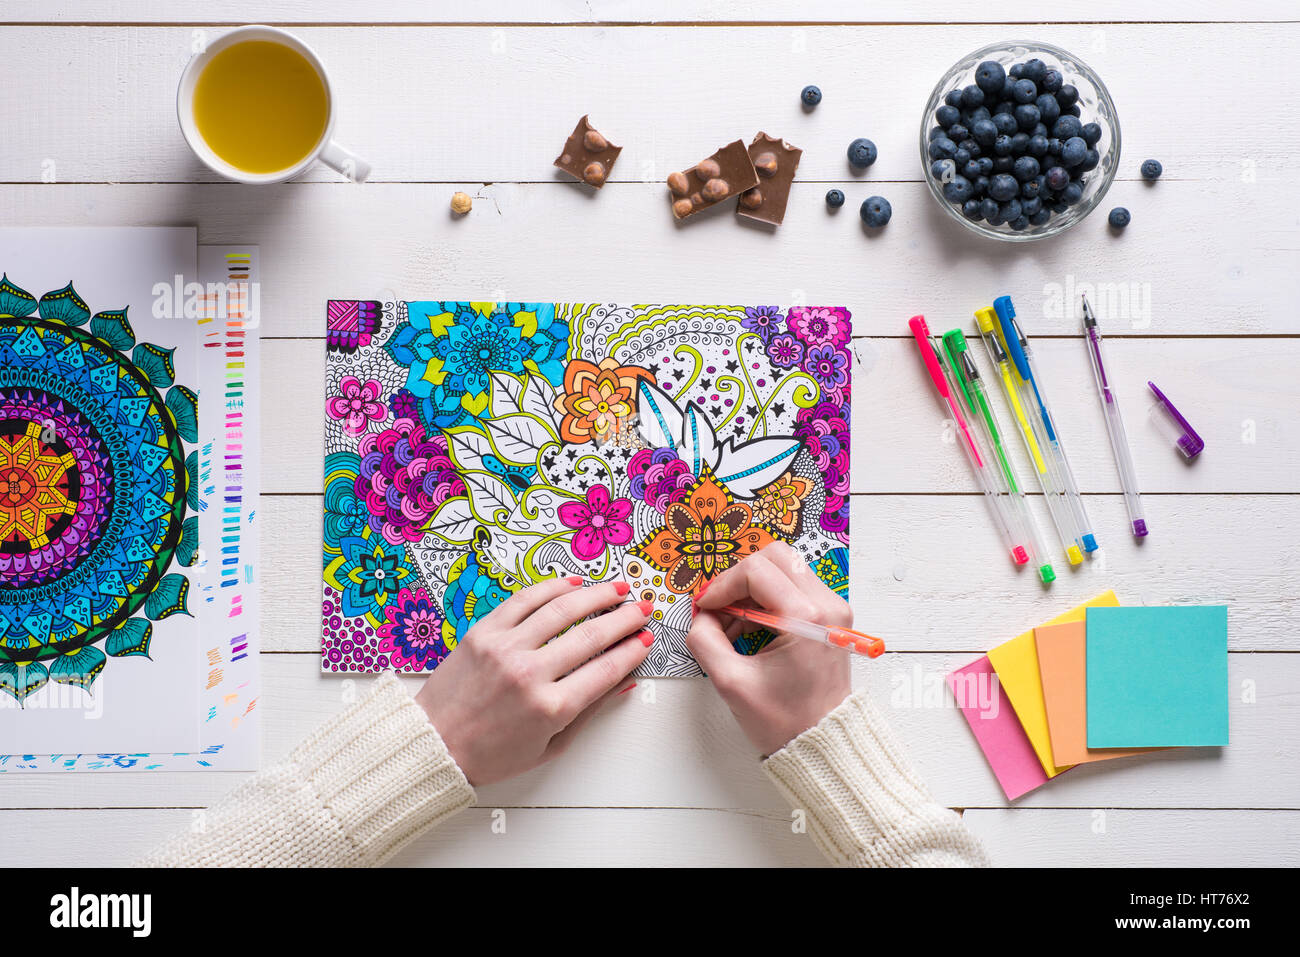 Flat lay, female colouring adult colouring books, new stress relieving trend - Stock Image